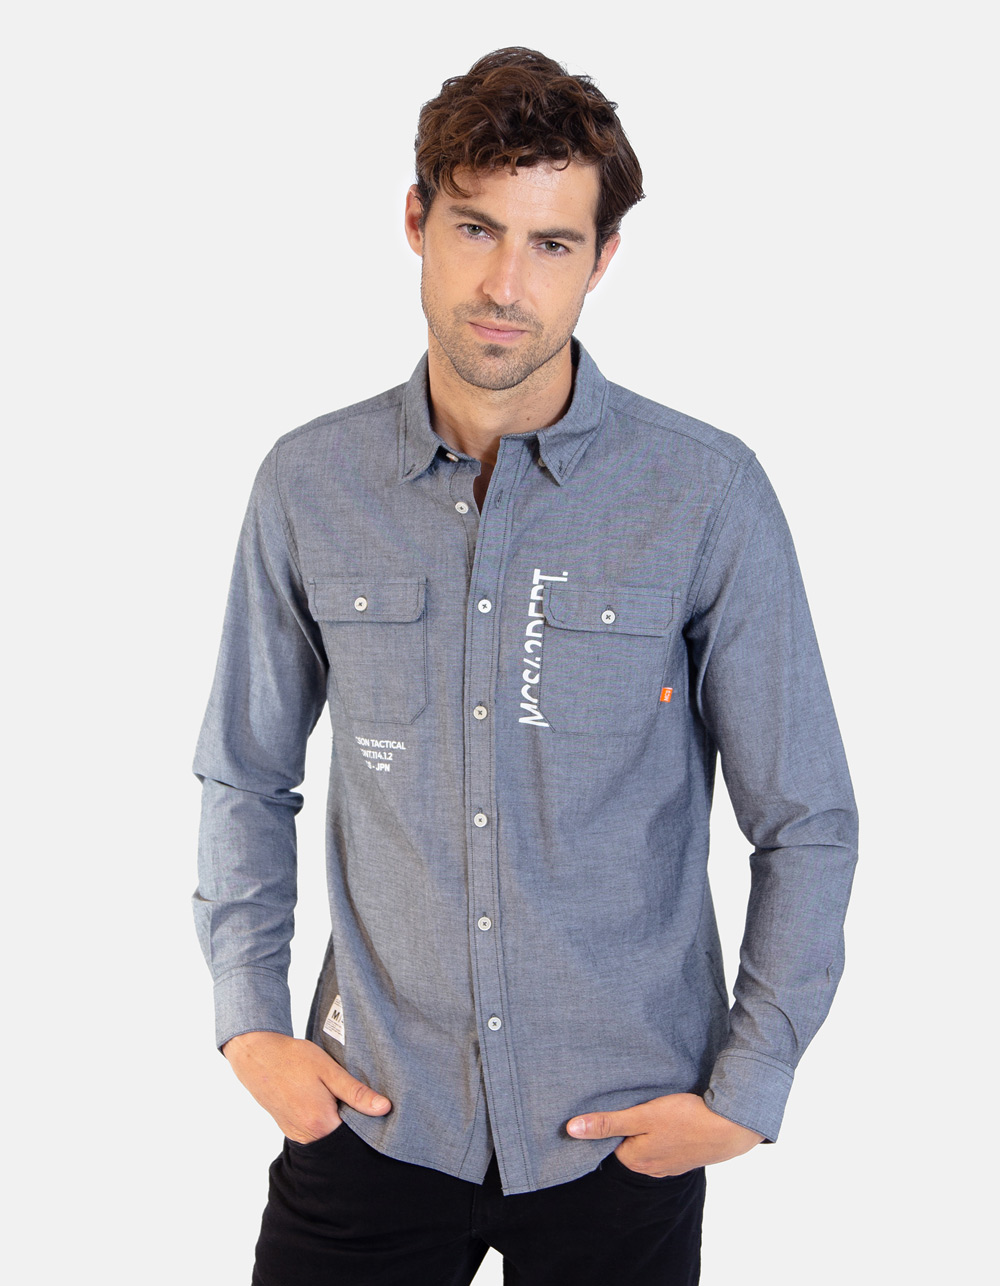 Grey Oxford long sleeve plain shirt